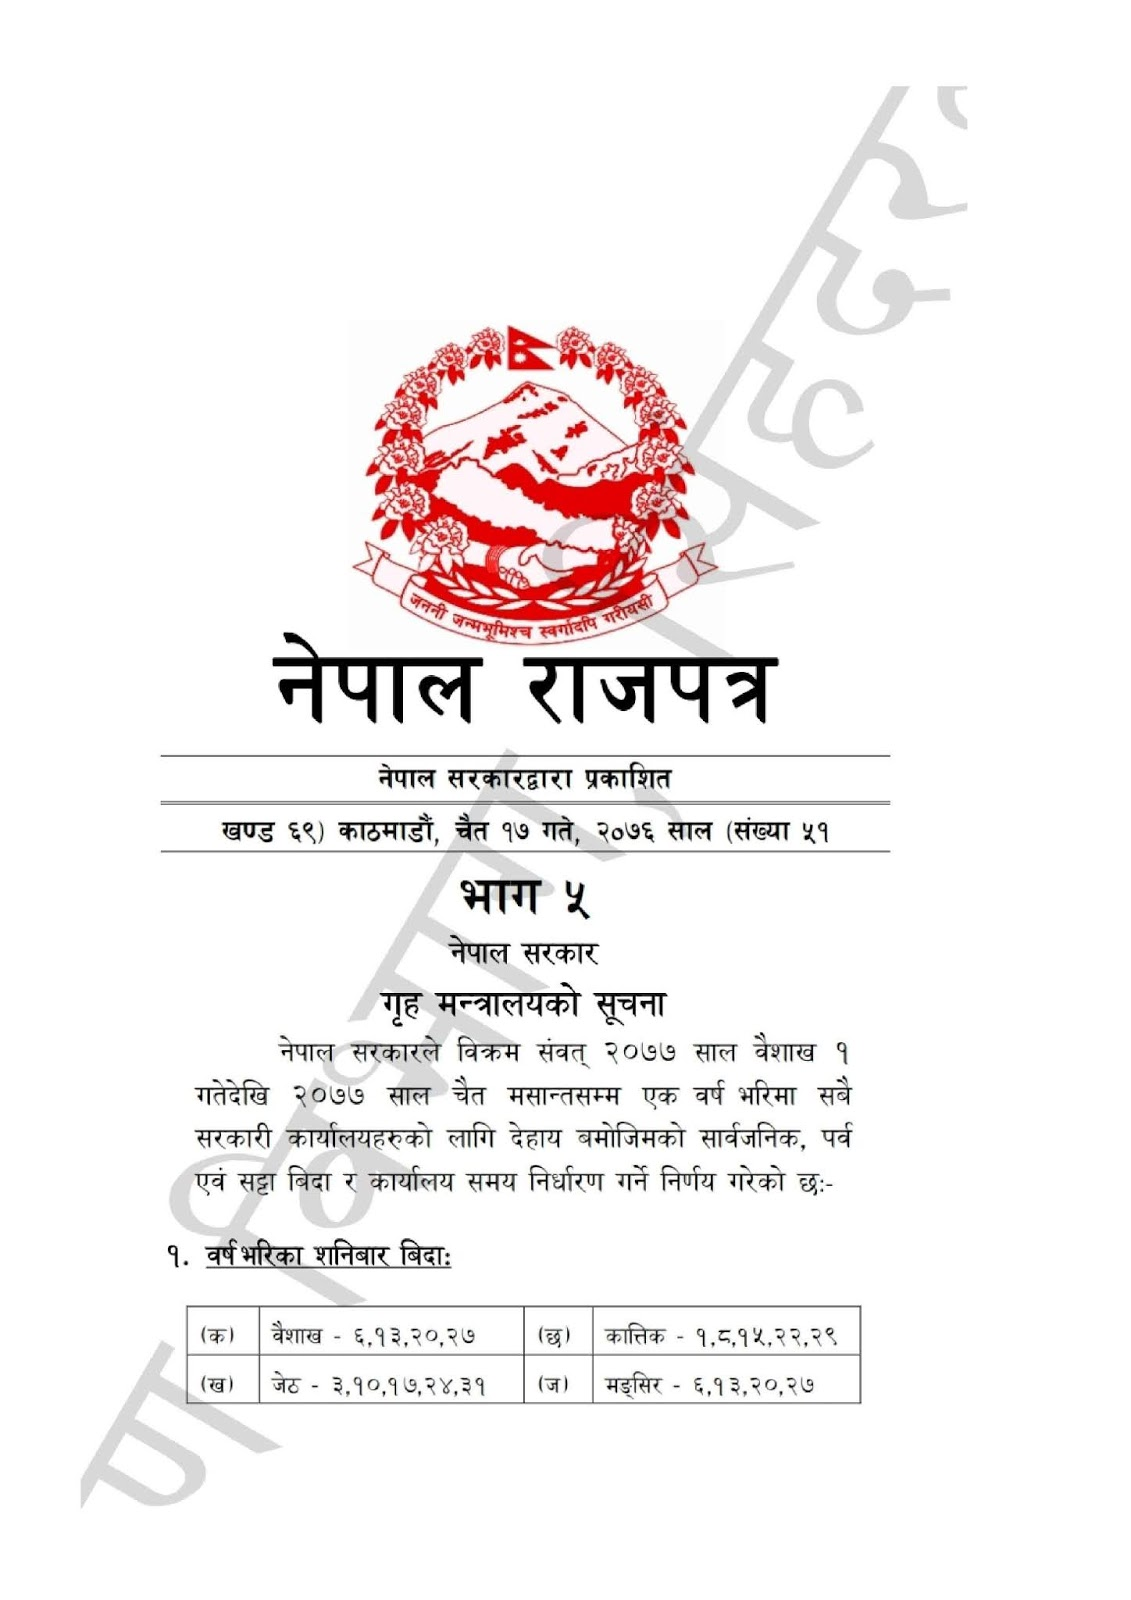 List of Public Holidays in Nepal for 2077 BS